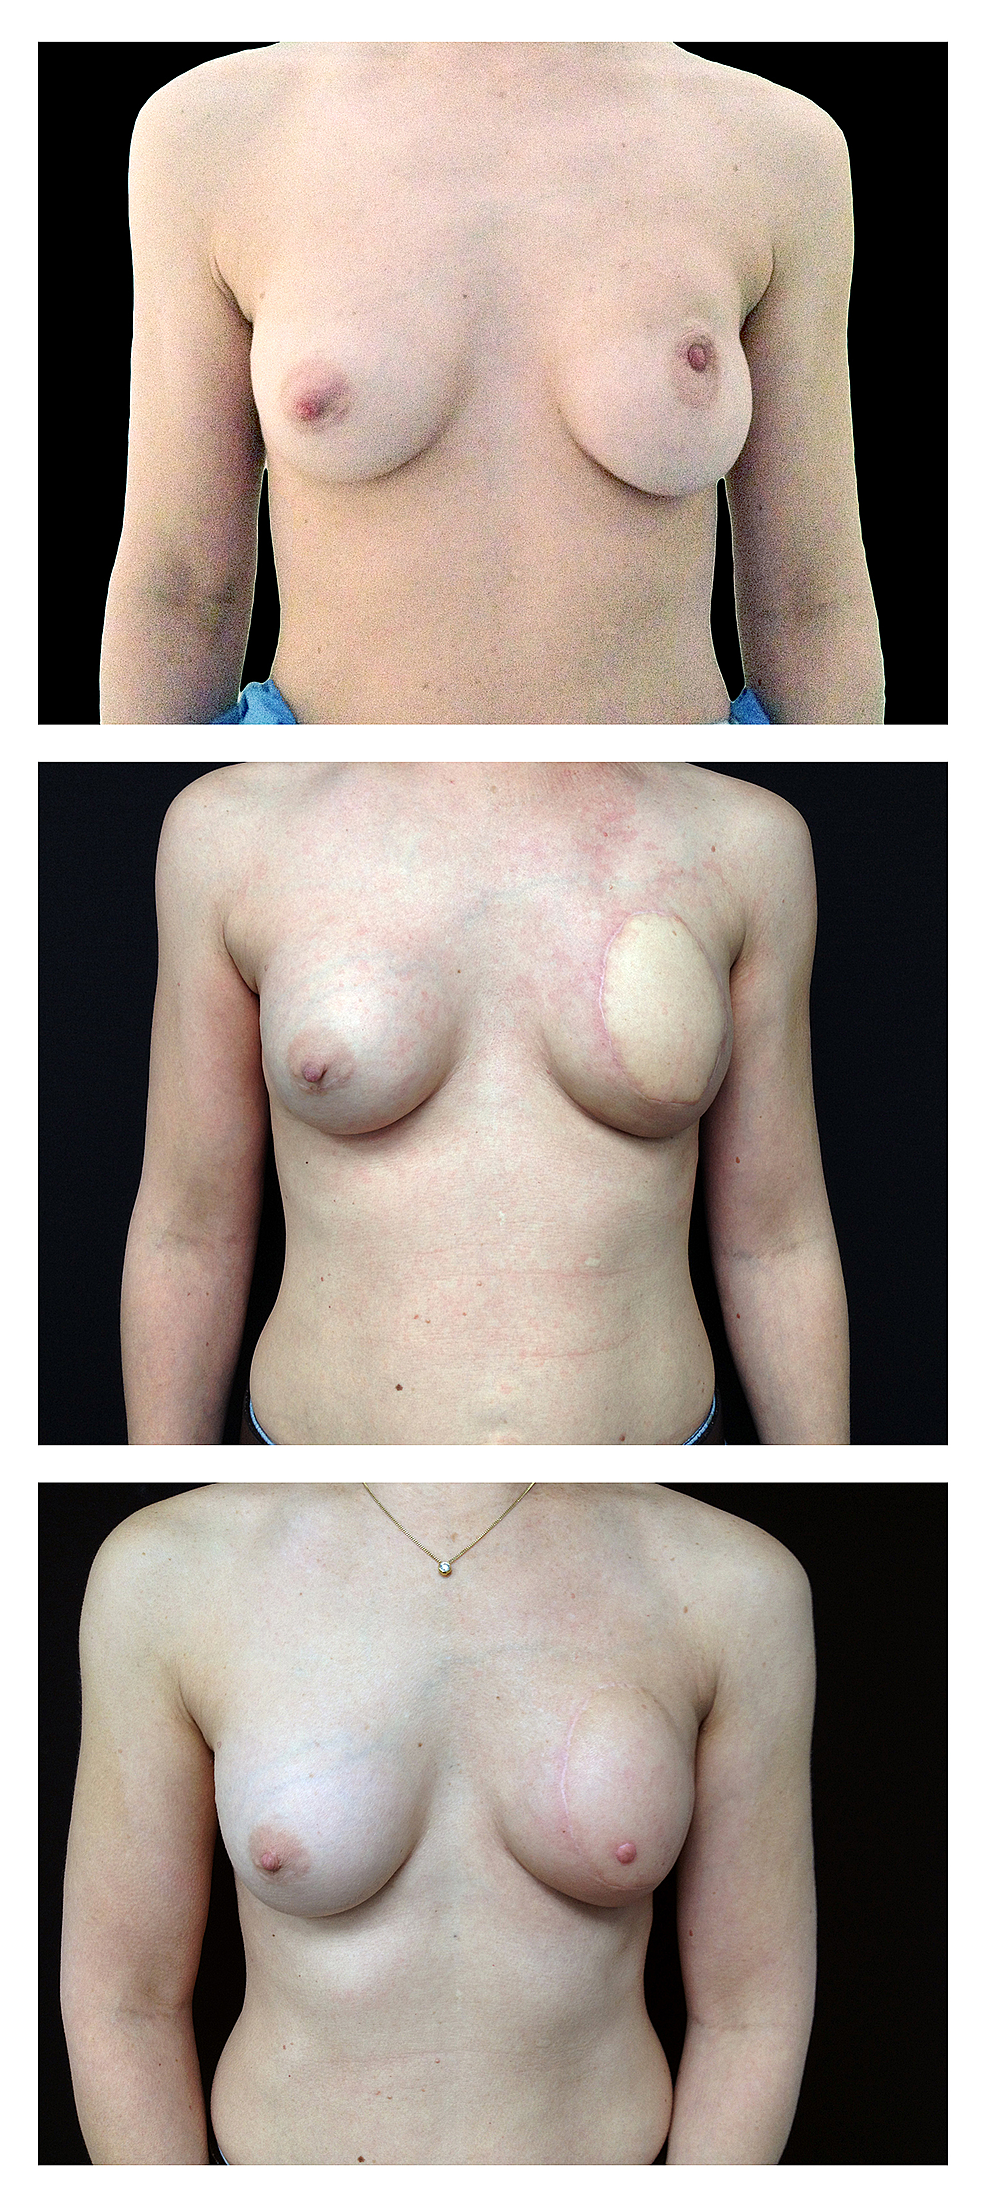 Representative-images-of-immediate-breast-reconstruction-in-the-setting-of-postmastectomy-radiation,-published-with-permission-from-the-patient.-Preoperative-(top),-post-autologous-latissimus-dorsi-flap-reconstruction-with-addition-of-prosthesis-(middle),-post-nipple-reconstruction-(bottom)